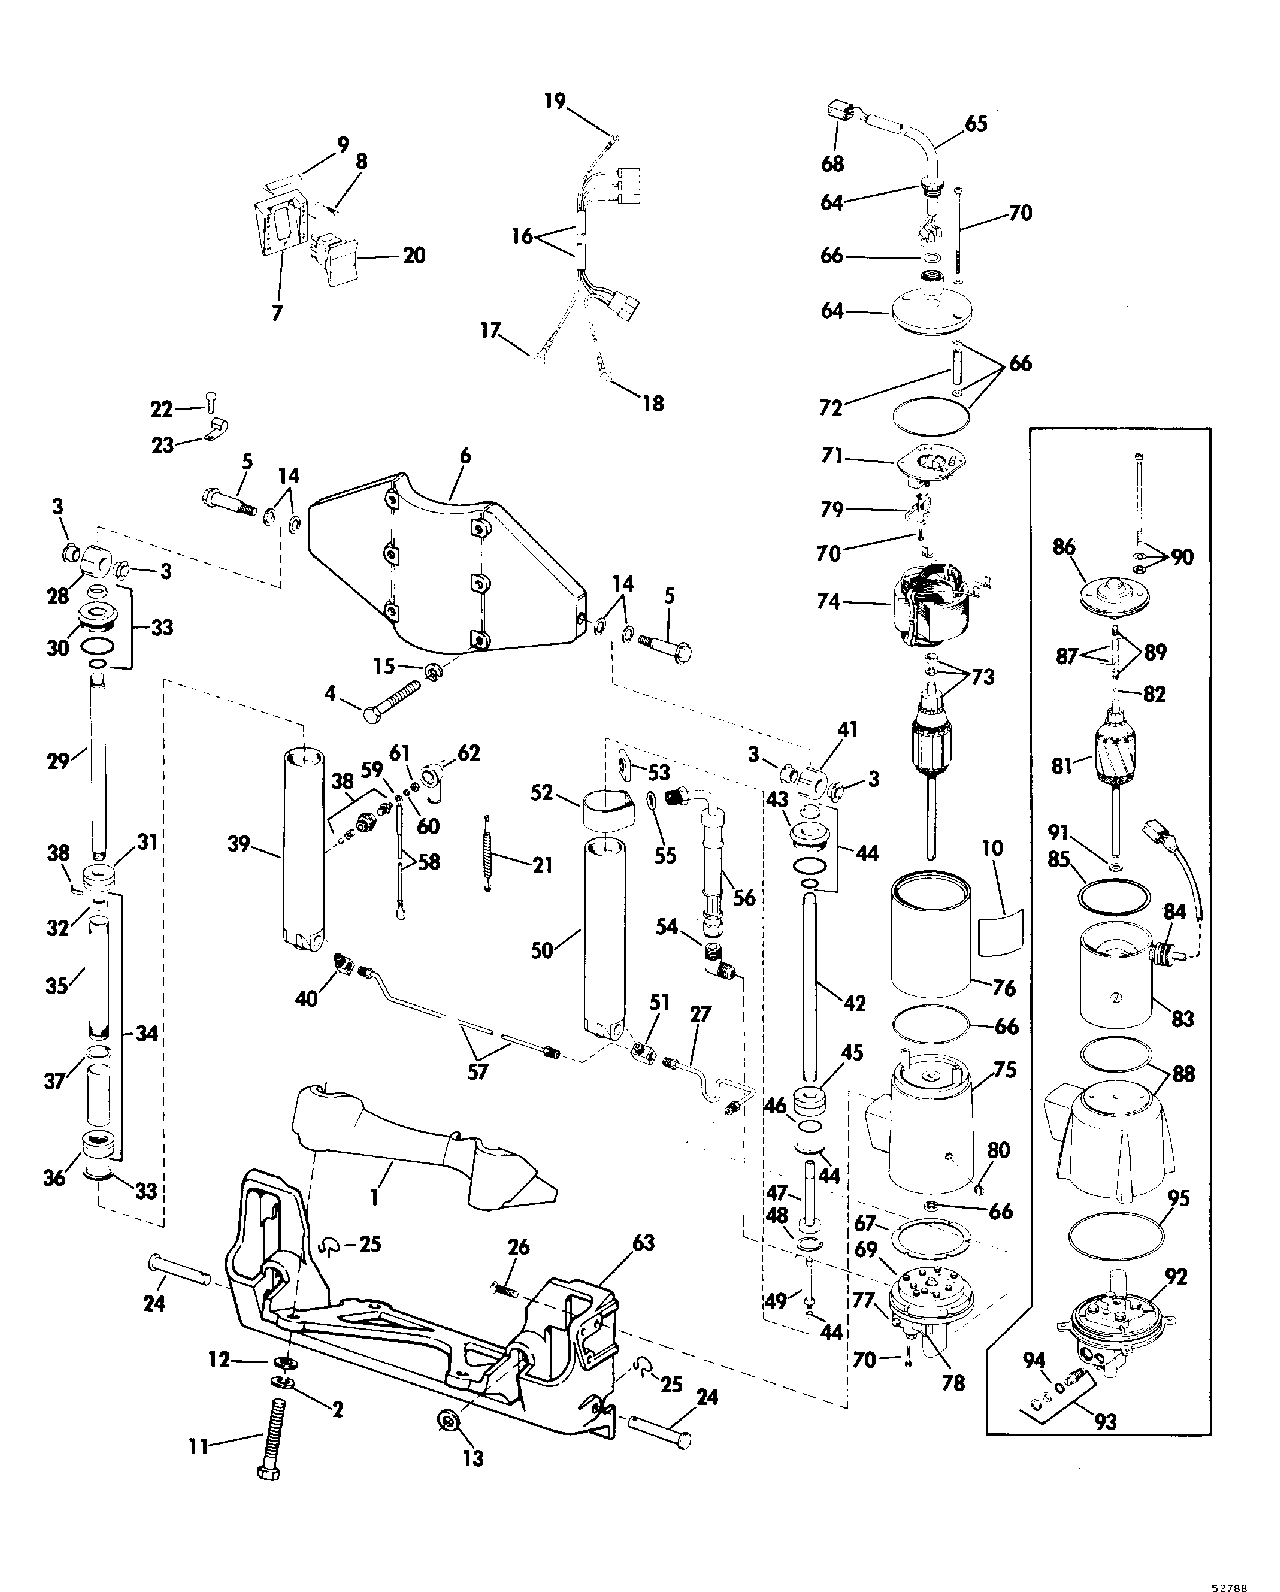 35868?resize\\\\\\\\\\\=665%2C827 1993 evinrude wiring diagram evinrude service manual, evinrude Basic Electrical Wiring Diagrams at mifinder.co